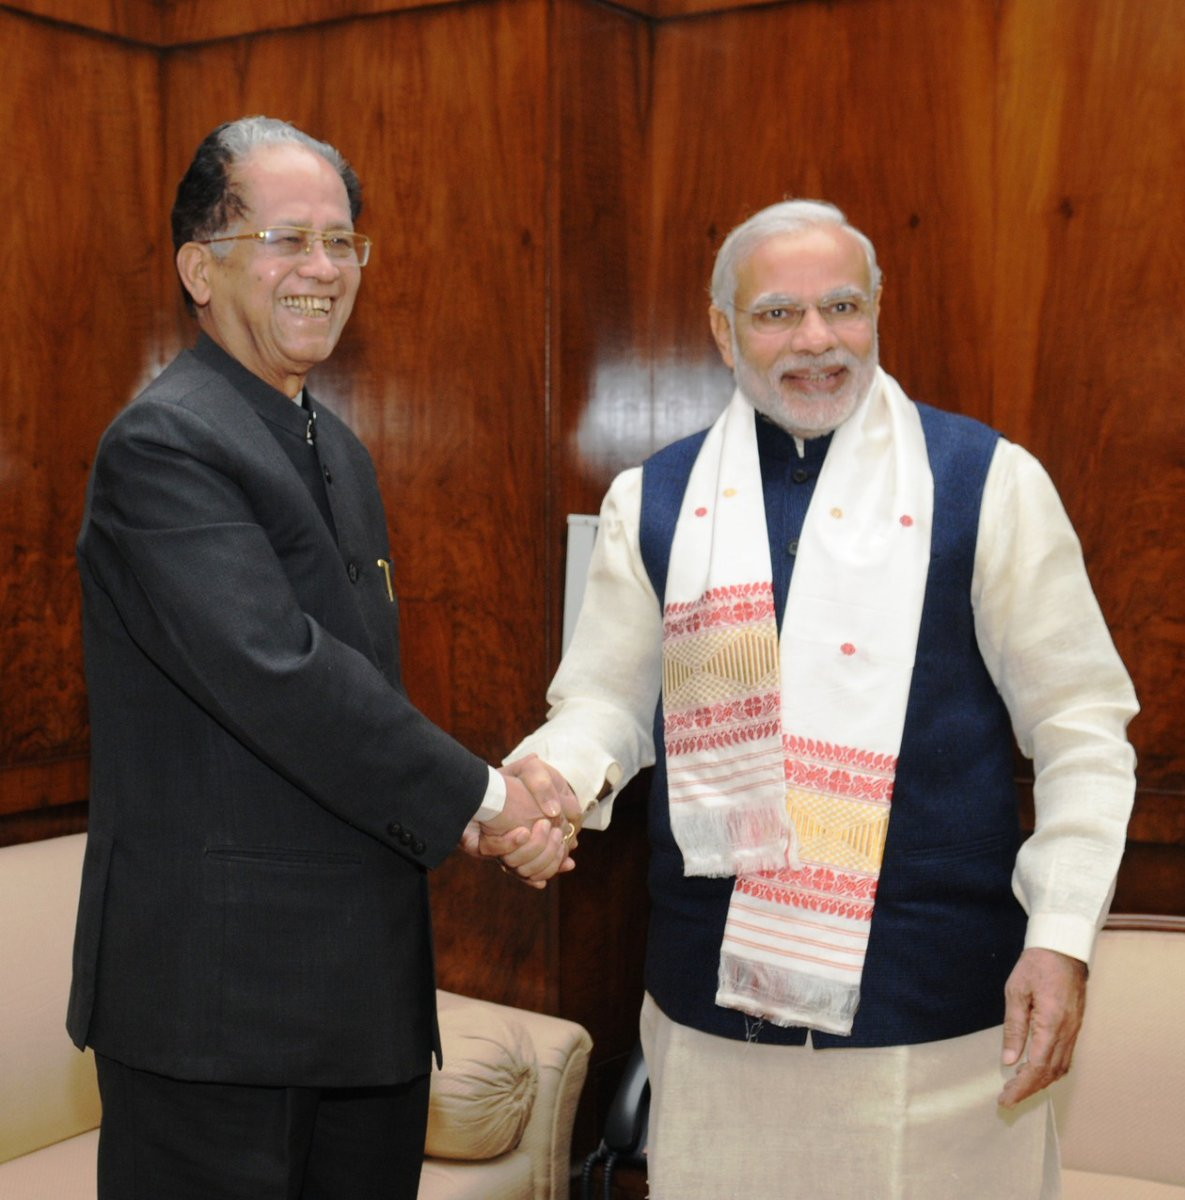 Shri Tarun Gogoi Ji was a popular leader and a veteran administrator, who had years of political experience in Assam as well as the Centre. Anguished by his passing away. My thoughts are with his family and supporters in this hour of sadness. Om Shanti.